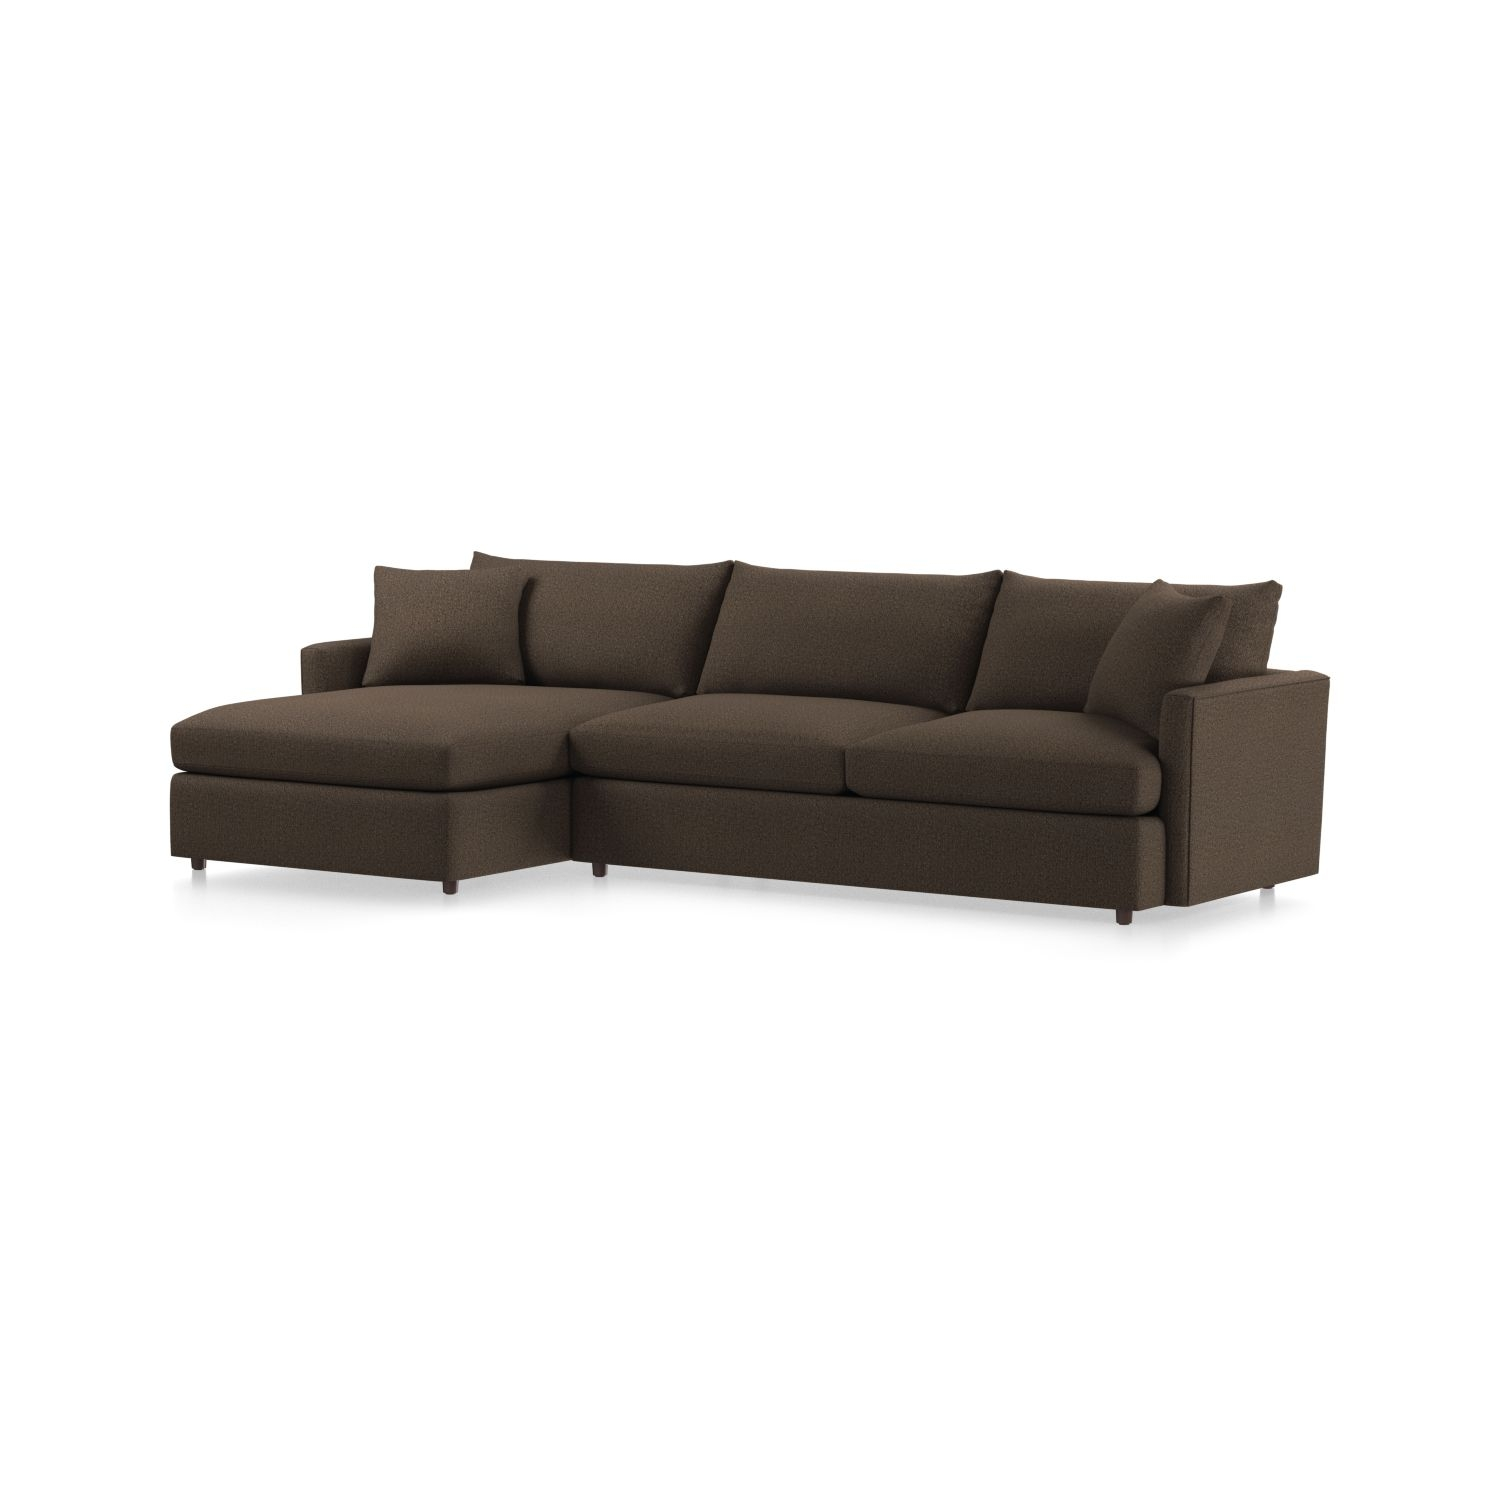 Lounge Ii Petite Sectional Sofa + Reviews | Crate And Barrel Intended For Elm Grande Ii 2 Piece Sectionals (Image 21 of 25)